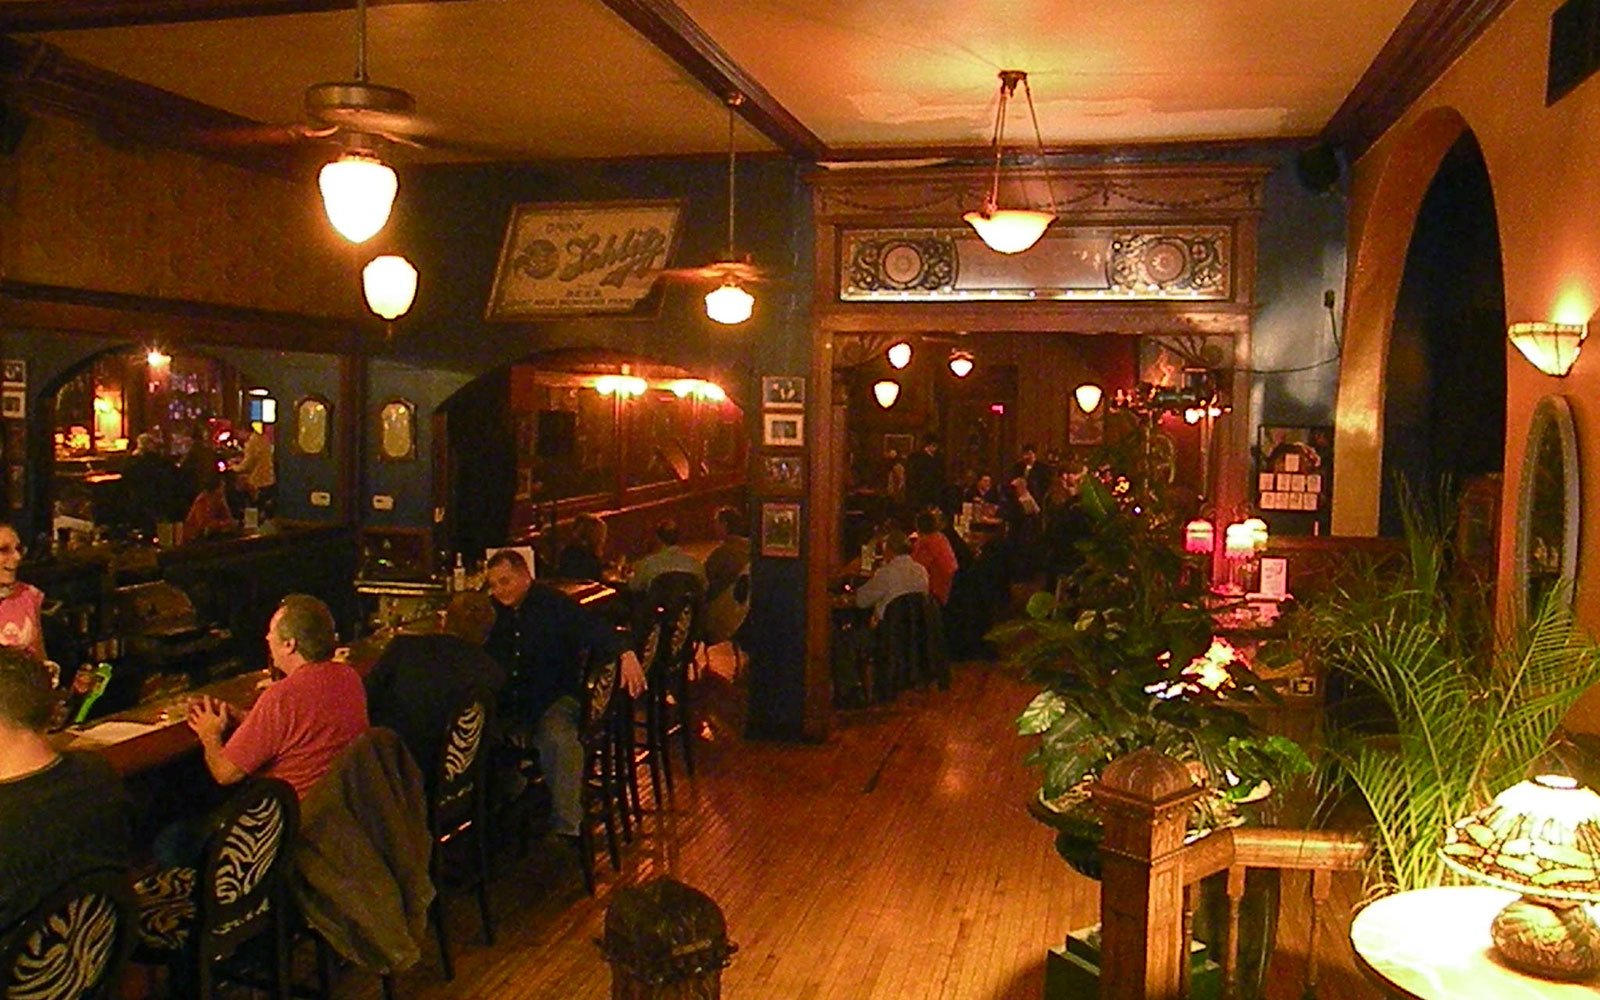 America's Most Haunted Bars and Restaurants: Shaker's Cigar Bar, Milwaukee